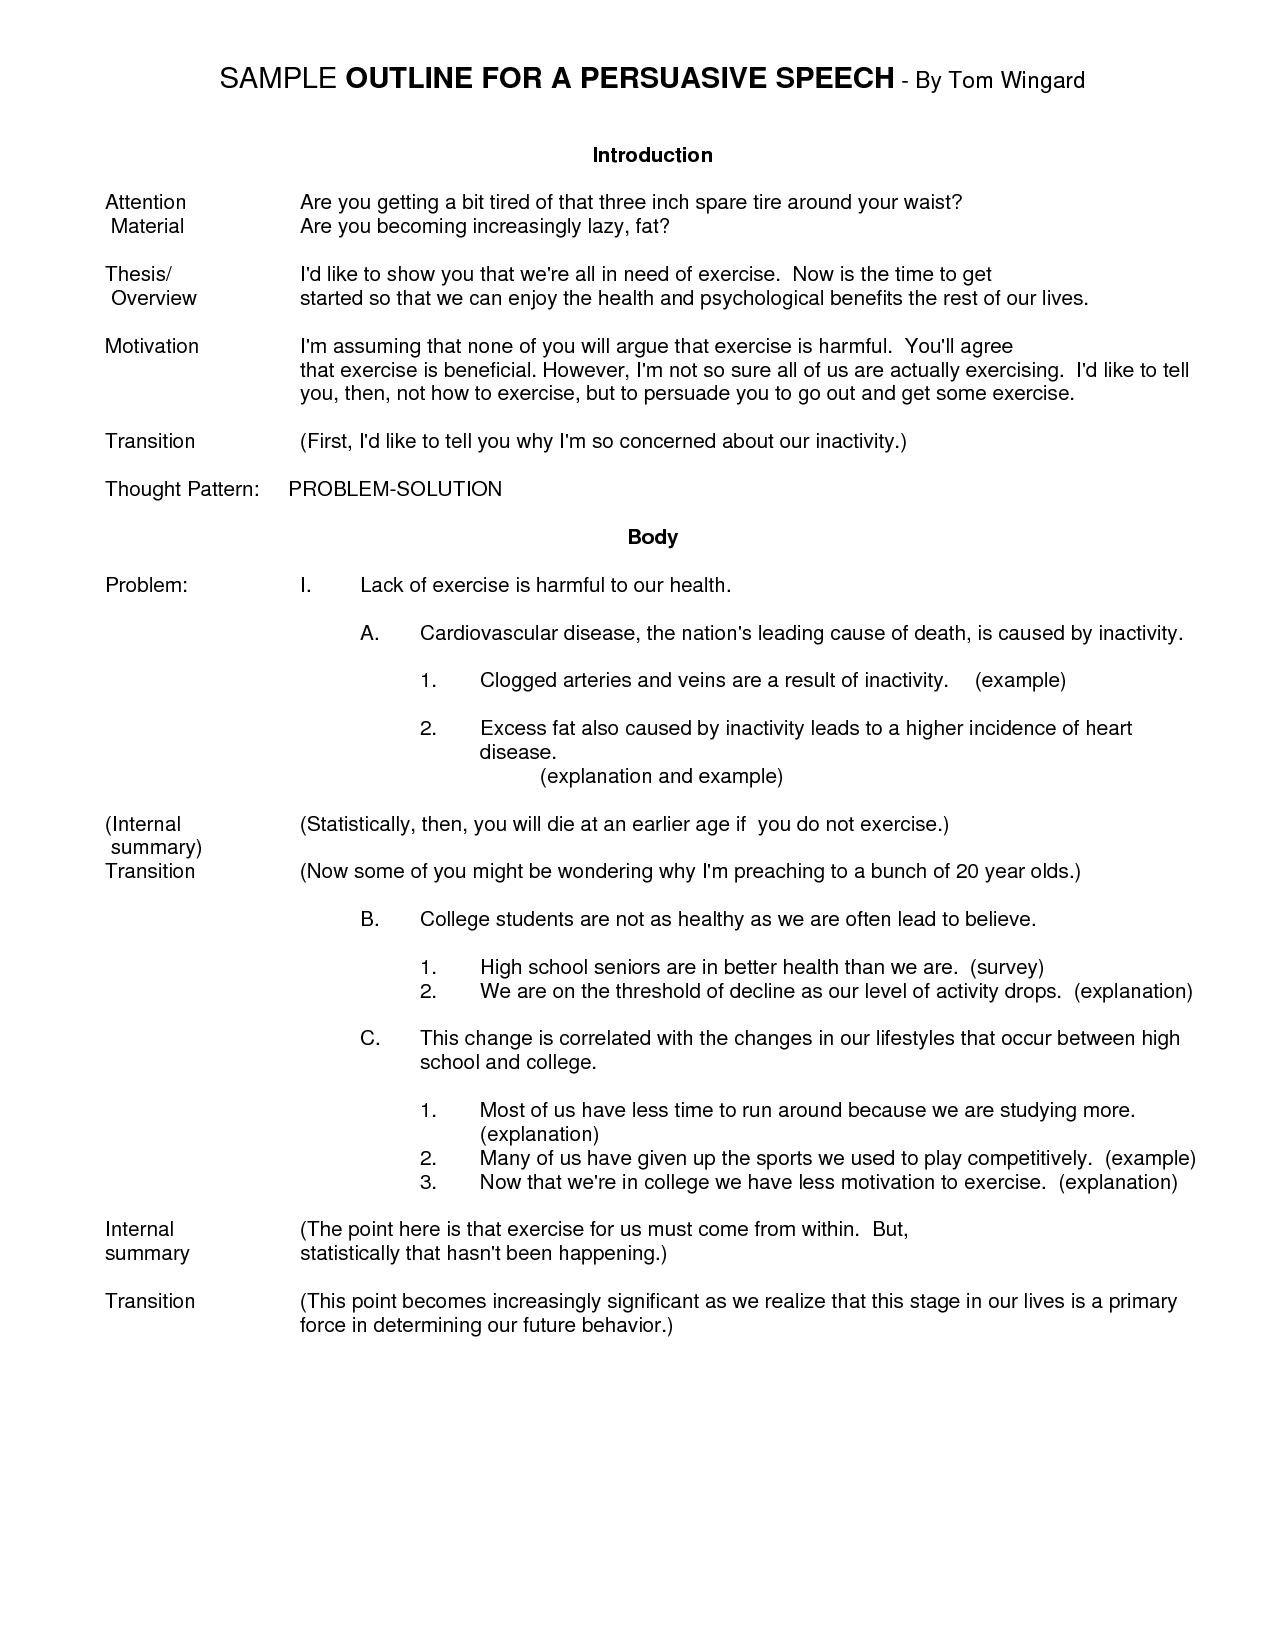 Essay Learning English Example Of A Persuasive Essay Outline Resume Templates Ngxkbryqgf Example  Of A Persuasive Essay Outlinehtml Sample The Yellow Wallpaper Character Analysis Essay also Examples Of A Thesis Statement For An Essay How To Write A Persuasive Essay Example Sample Of Persuasive  The Importance Of Learning English Essay